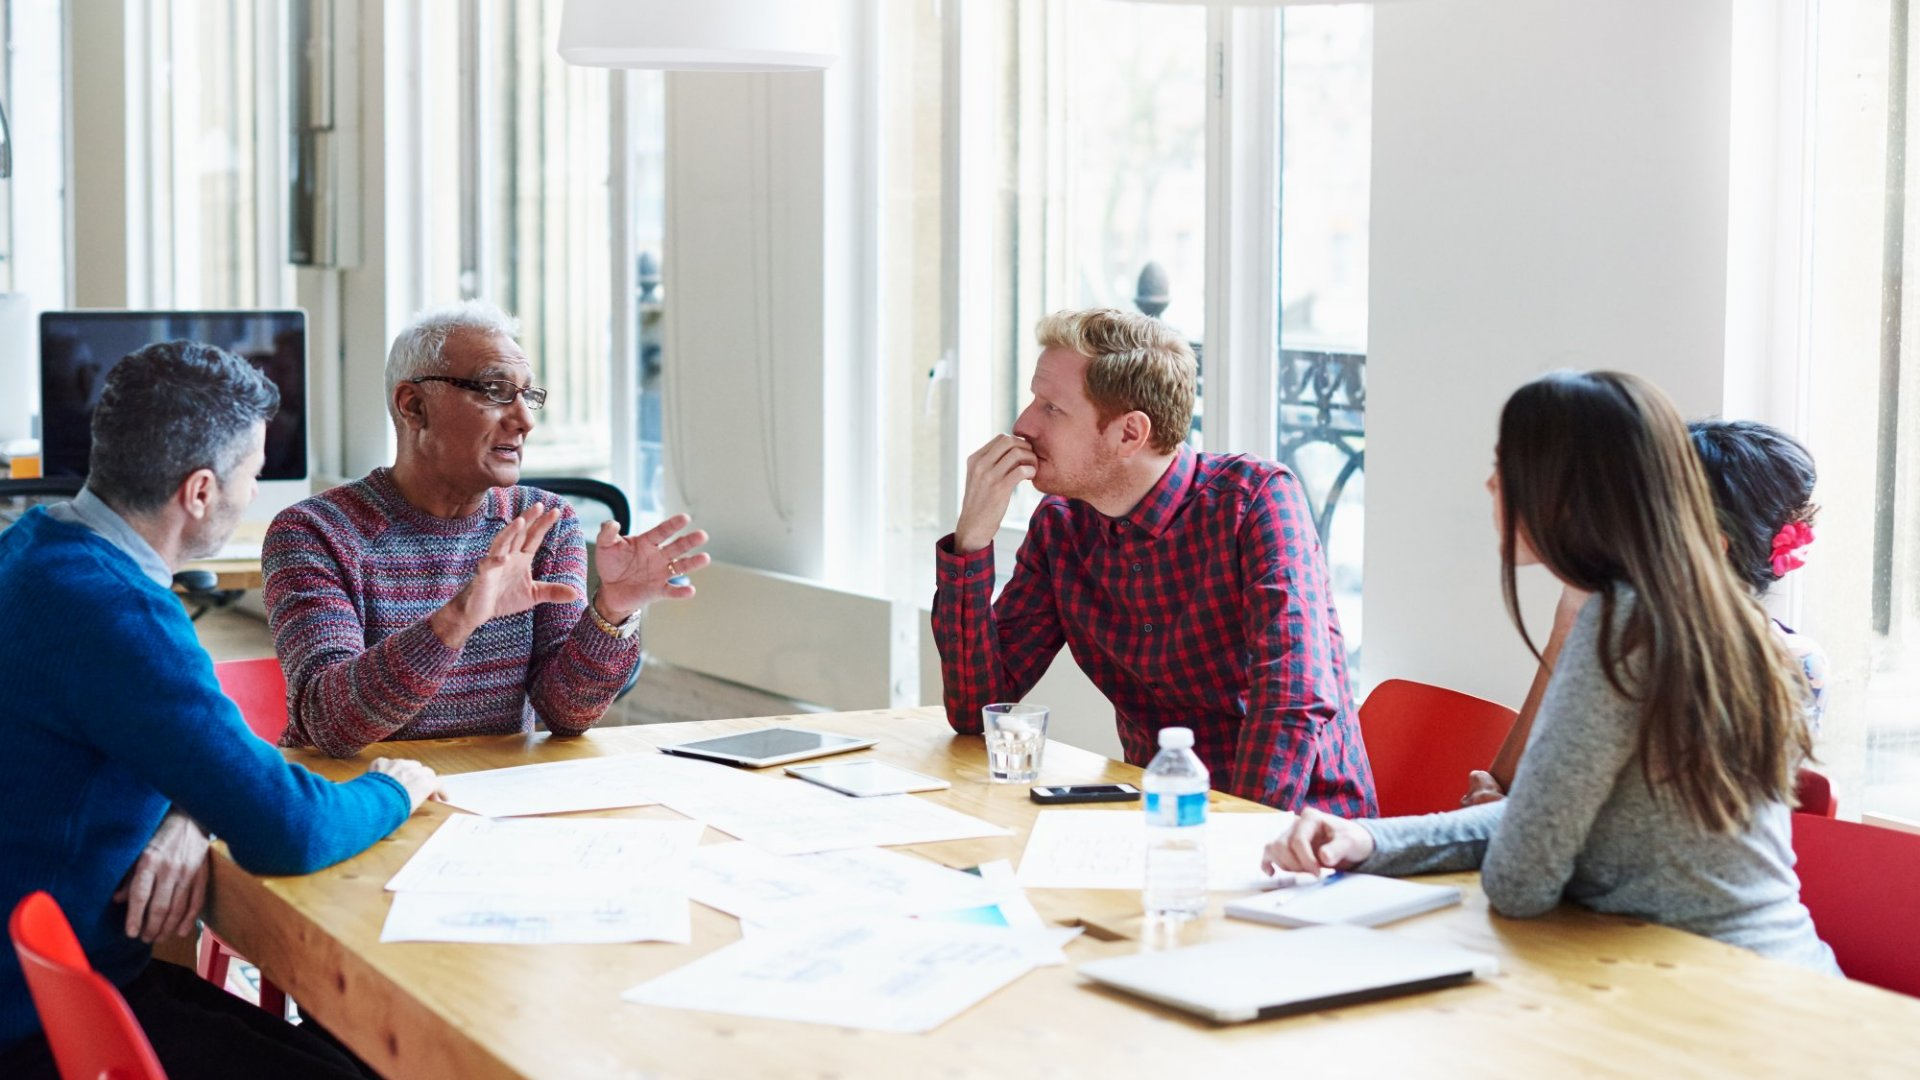 In Just 7 Minutes, You Can Make Every Meeting More Productive